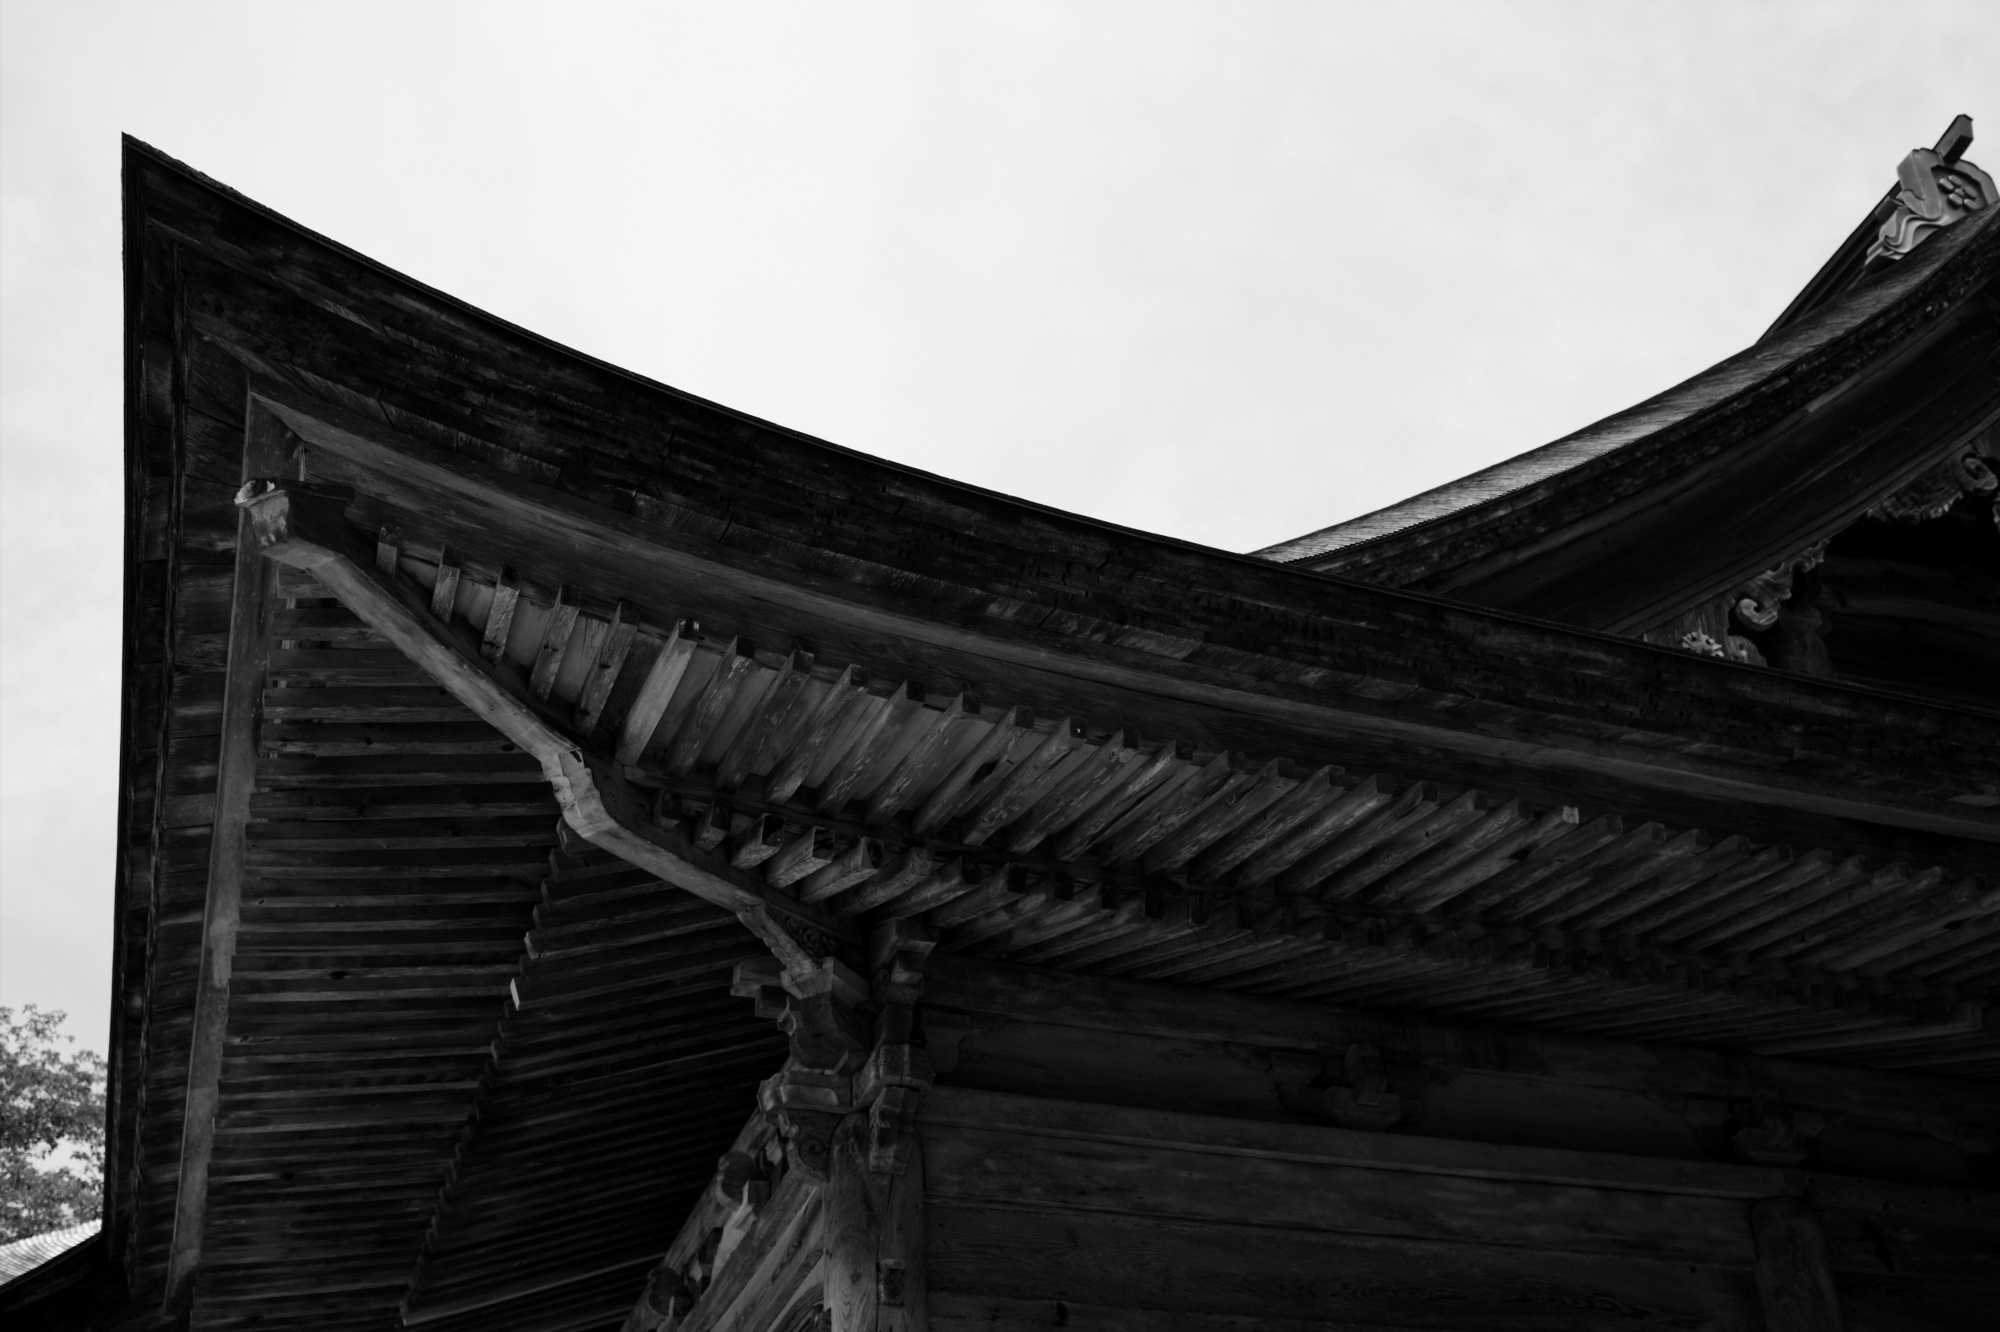 Myojoji Temple, Noto Peninsula, Japan, May, 2016